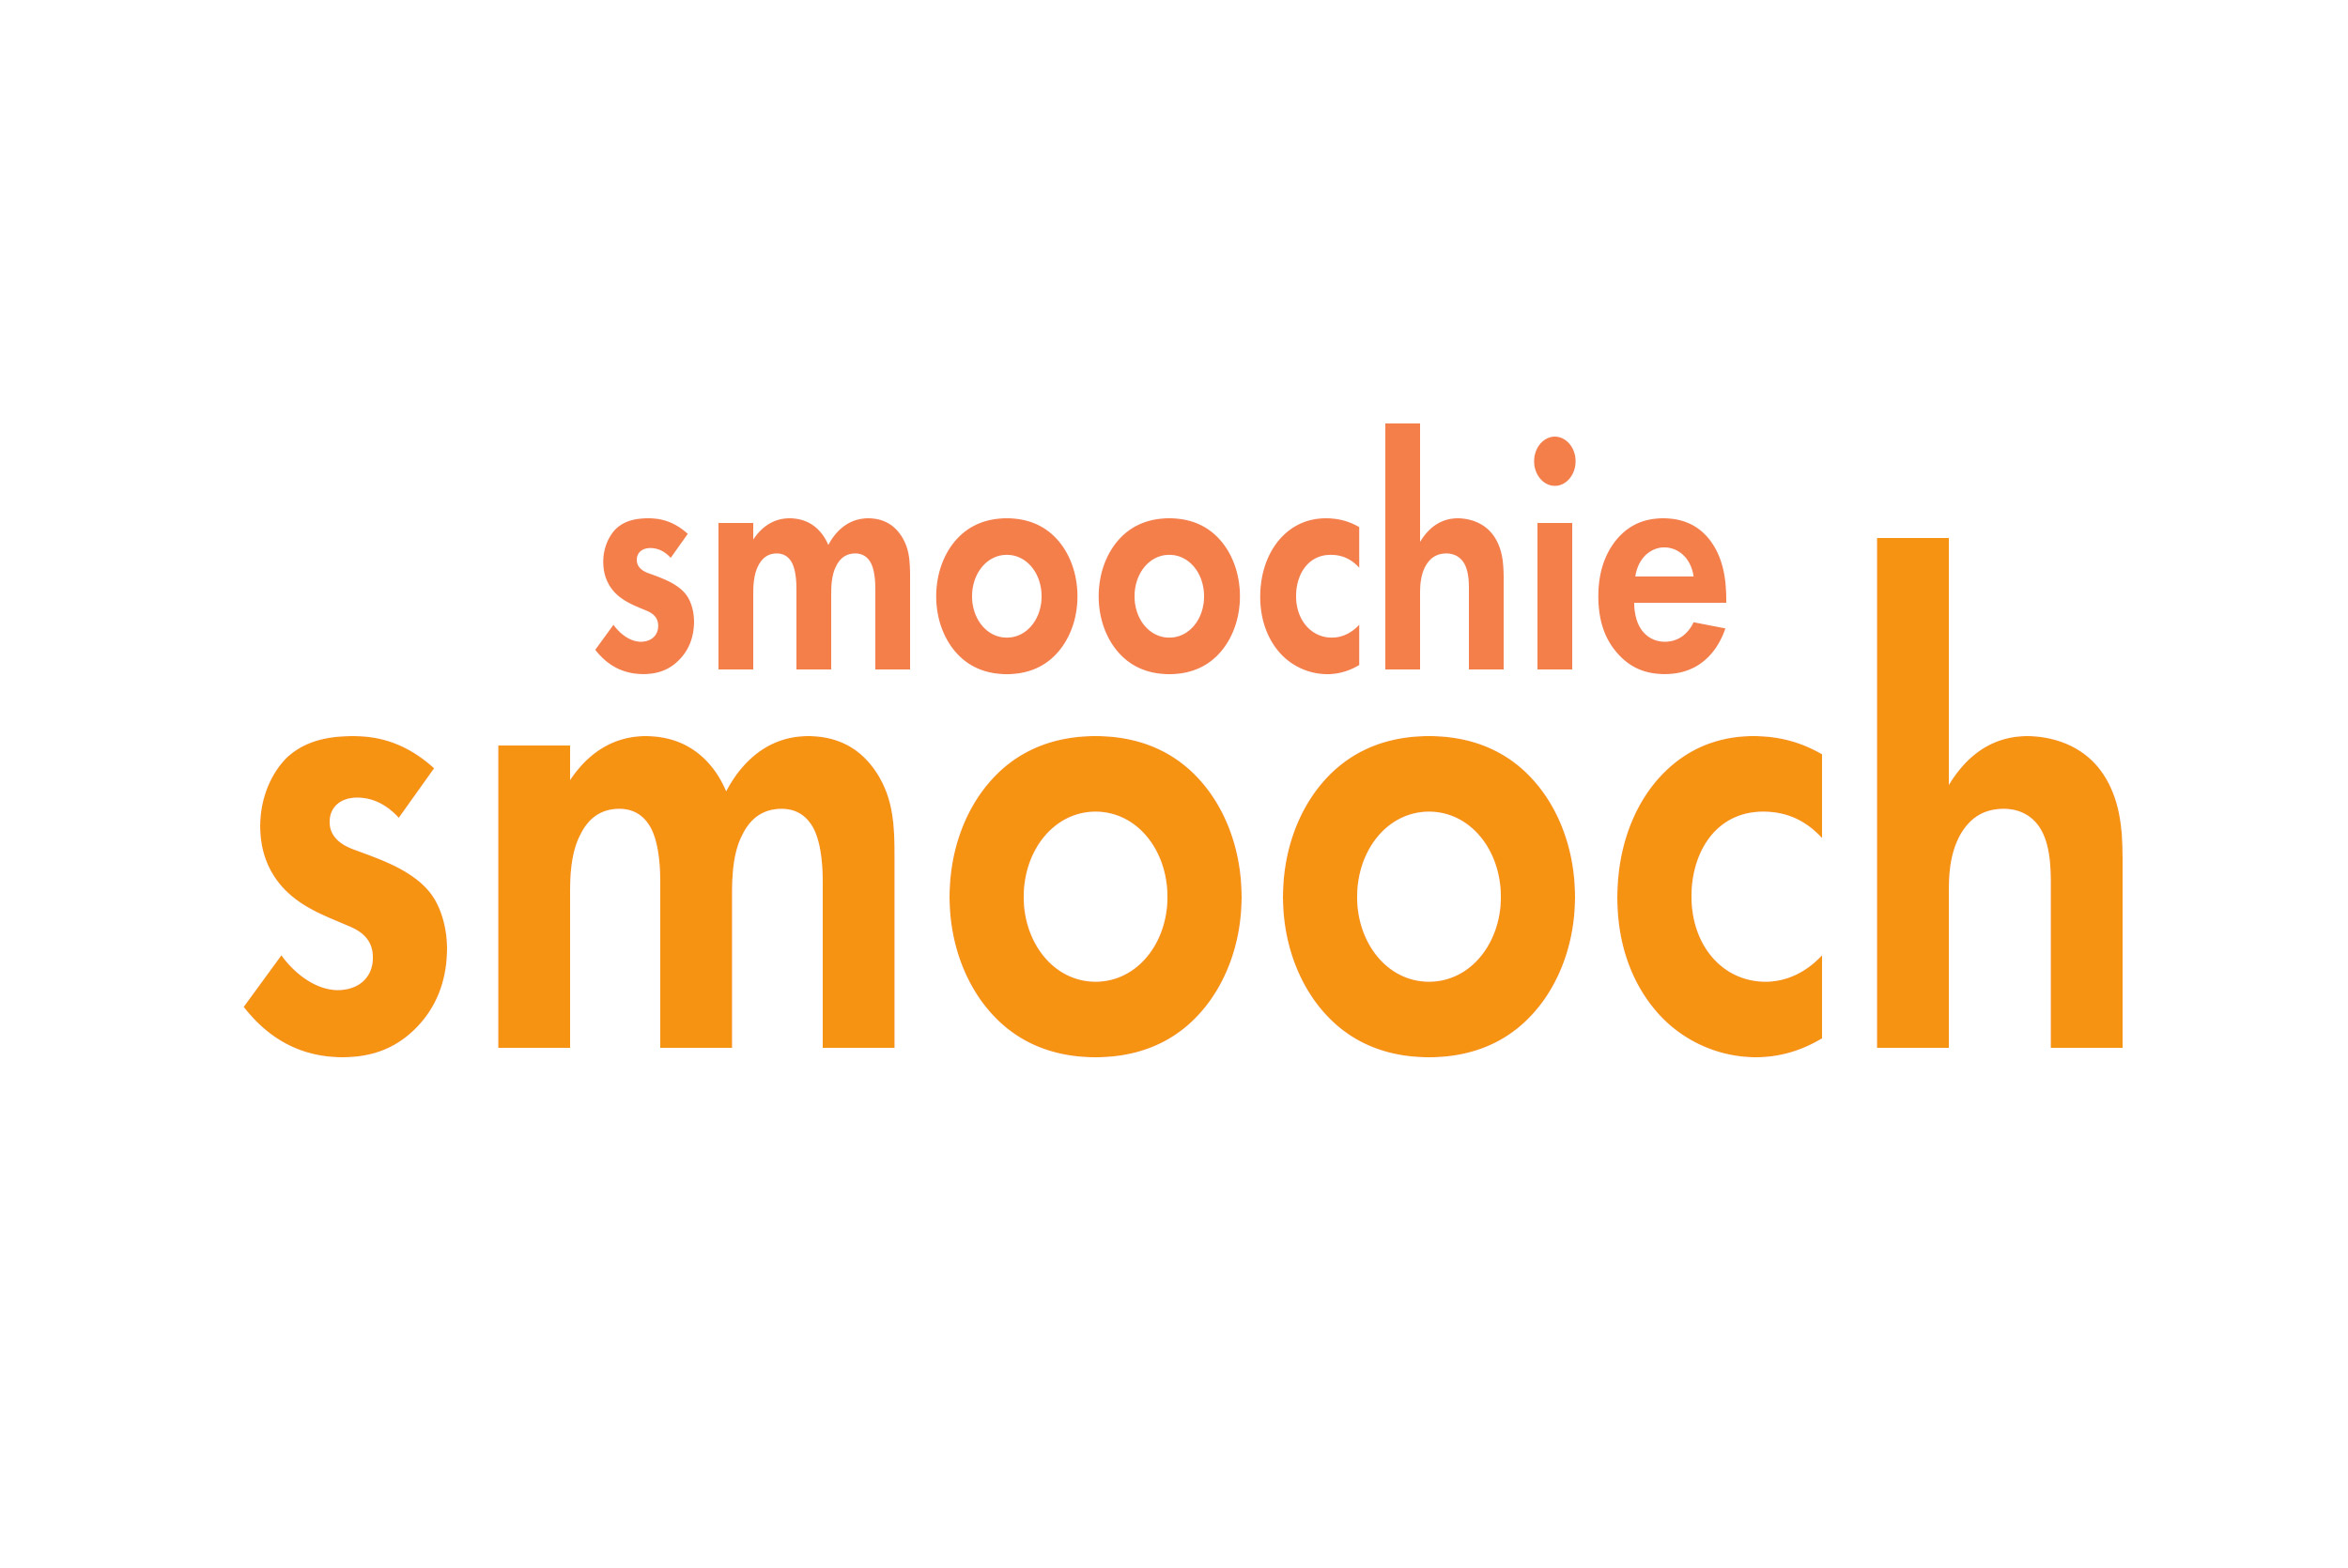 KIM LOWE | DIRECTOR PHOTOGRAPHER | KIDS  | LOVE | PLAY | Family | Smoothie Smooch